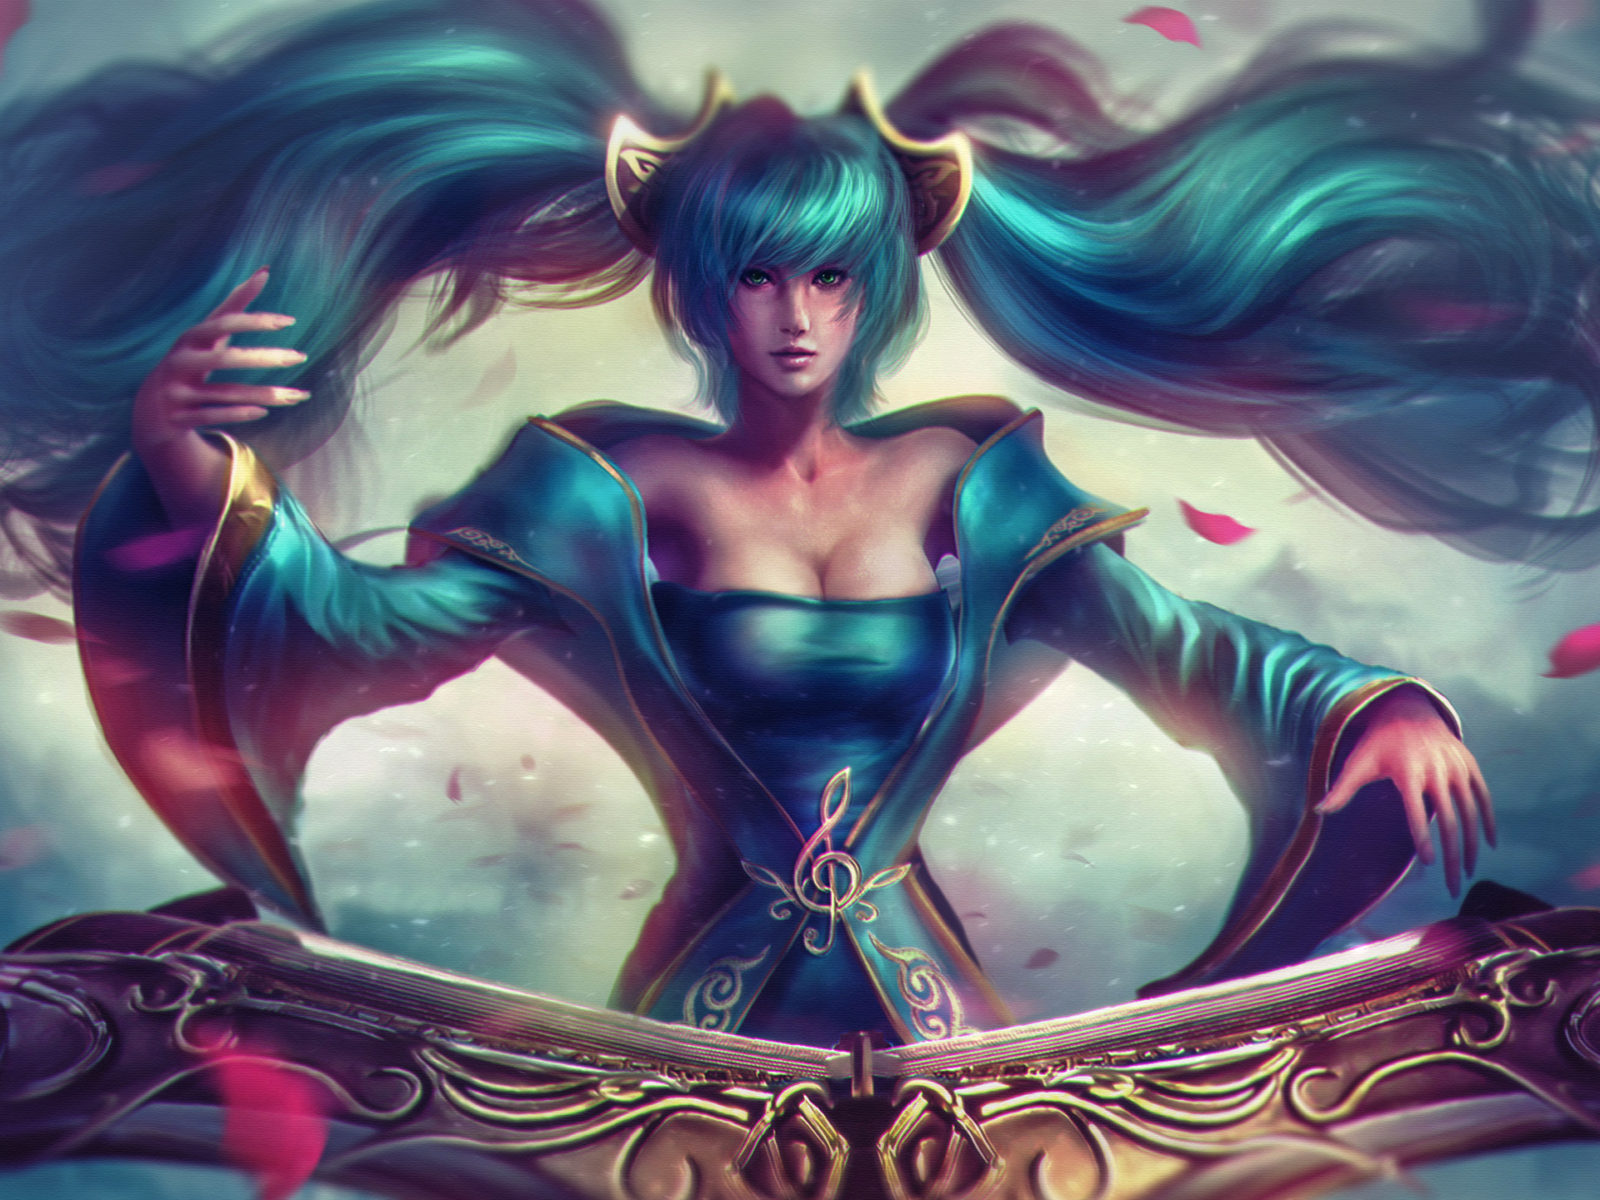 Mage Girl Wallpaper League Of Legends Champion Sona Girls Blue Hair Maven Of